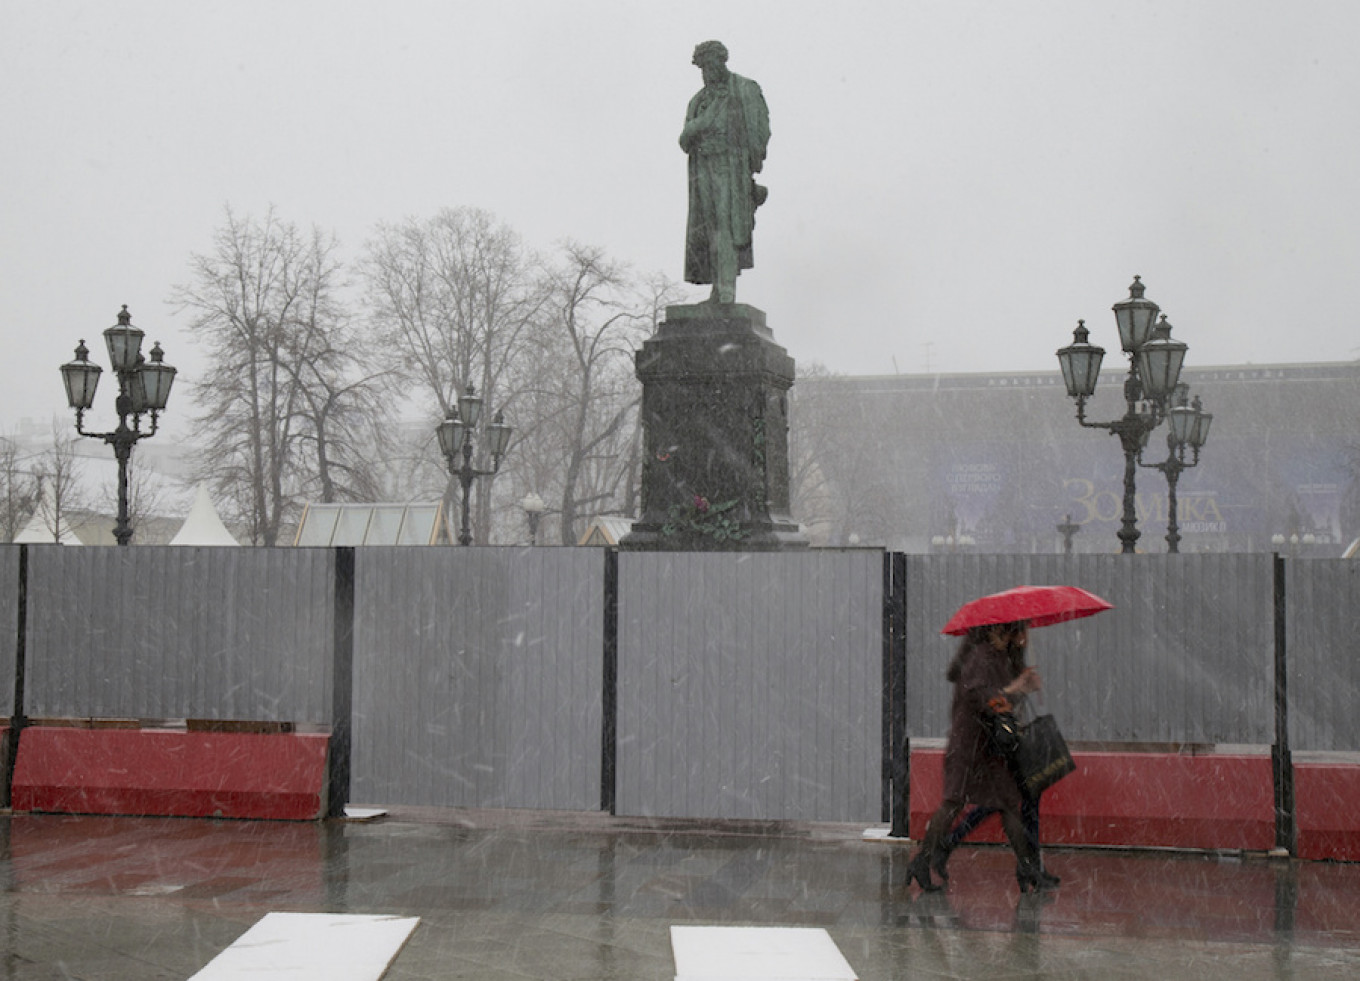 Women walk past the Alexander Pushkin monument surrounded by a barricade as it snows, in Moscow, March 28, 2017. 				 				Alexander Zemlianichenko / AP